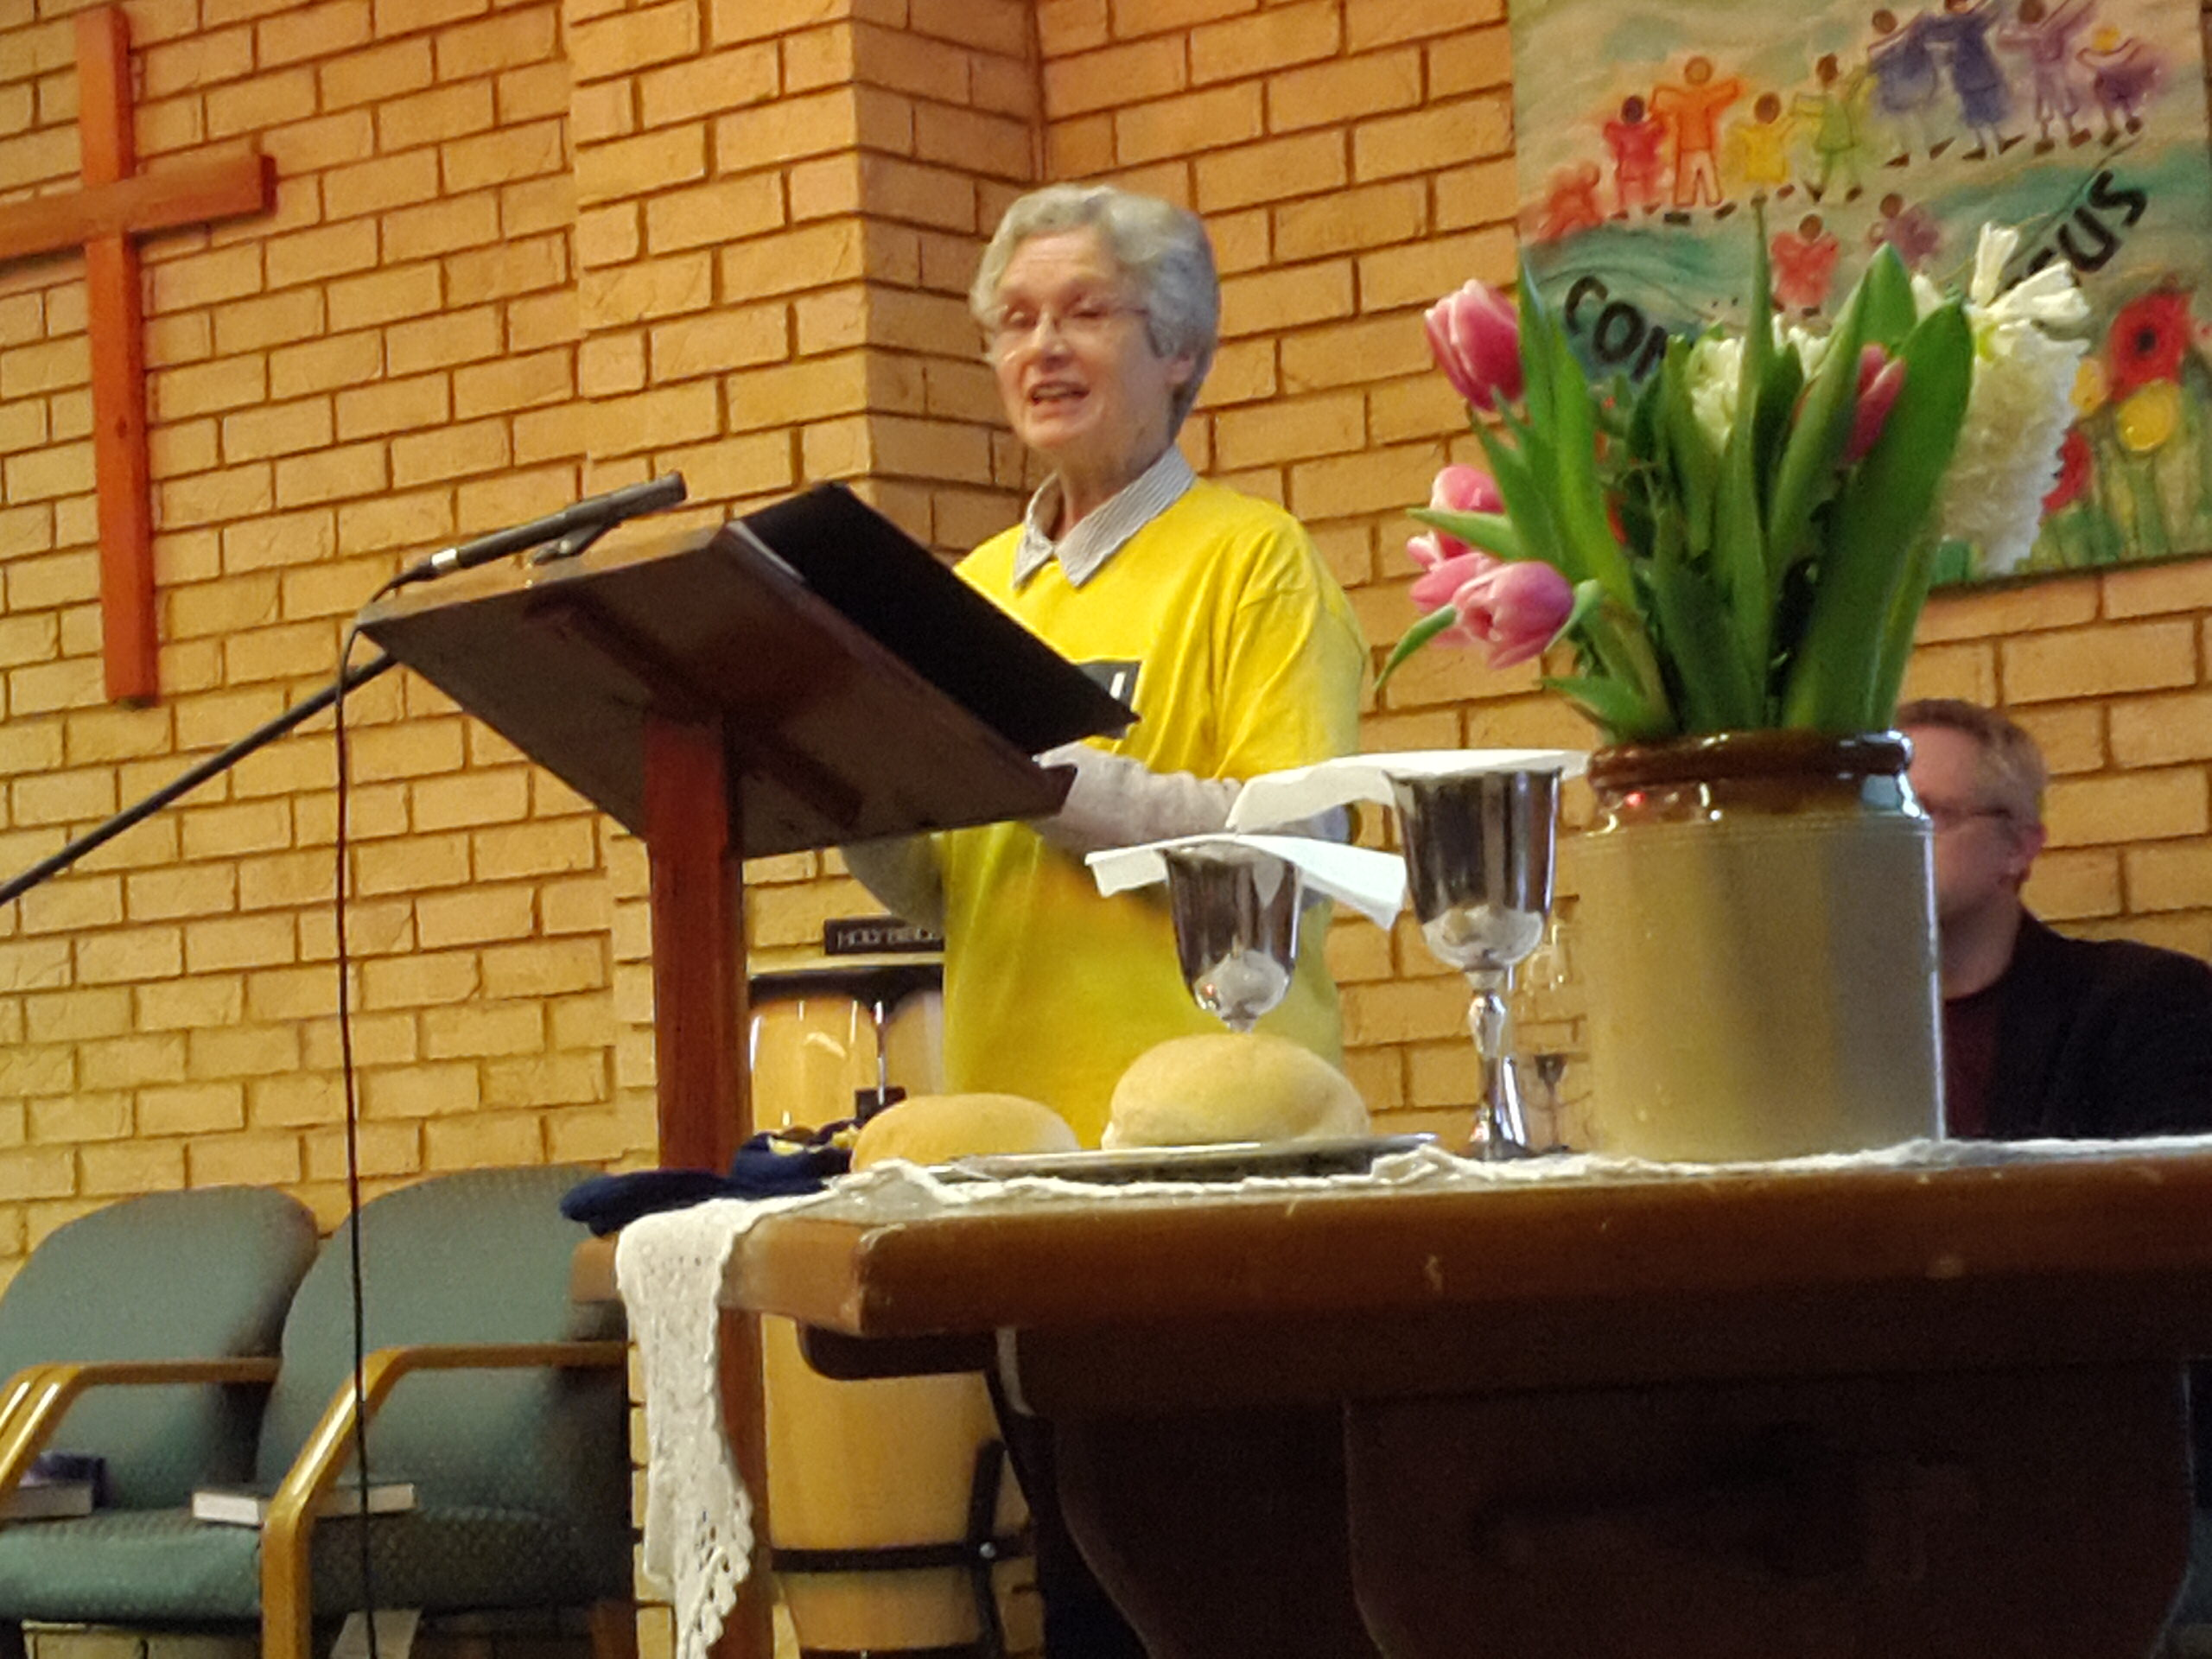 Ruth Basden speaking at Main Street Community Church on 21 January 2018.